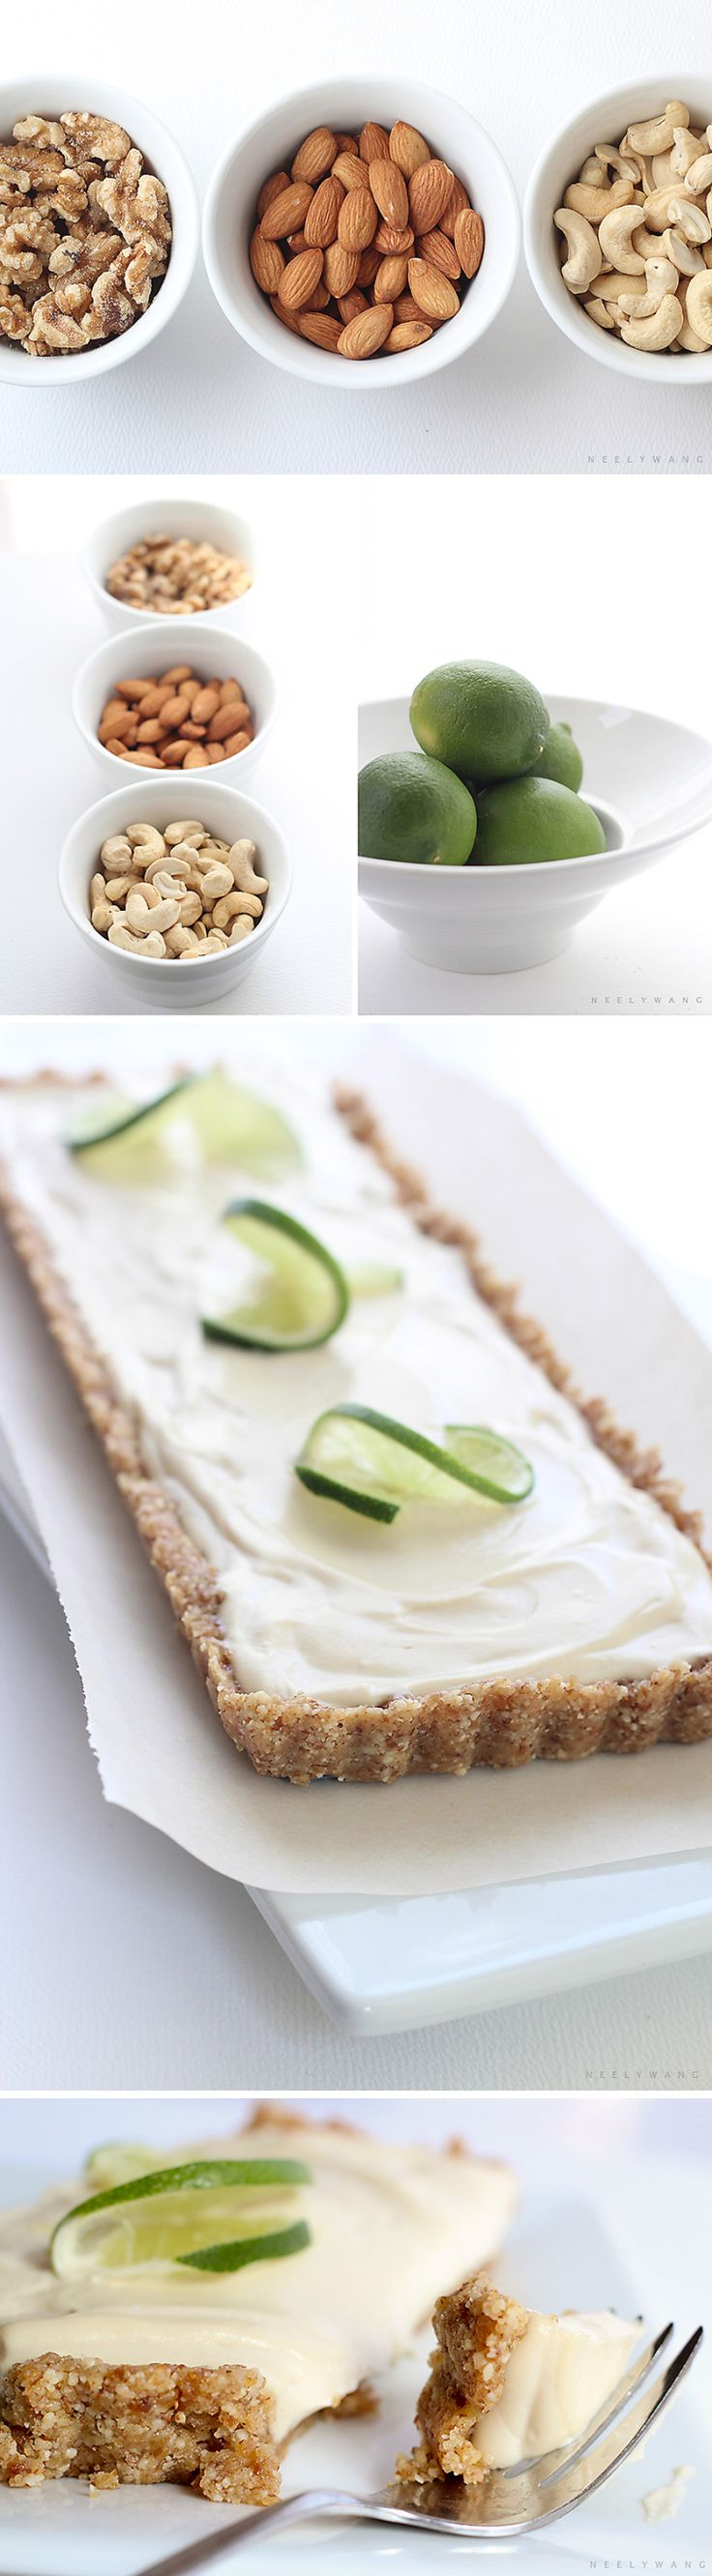 recipe for raw vegan lime tart. I would replace the lime for lemon.